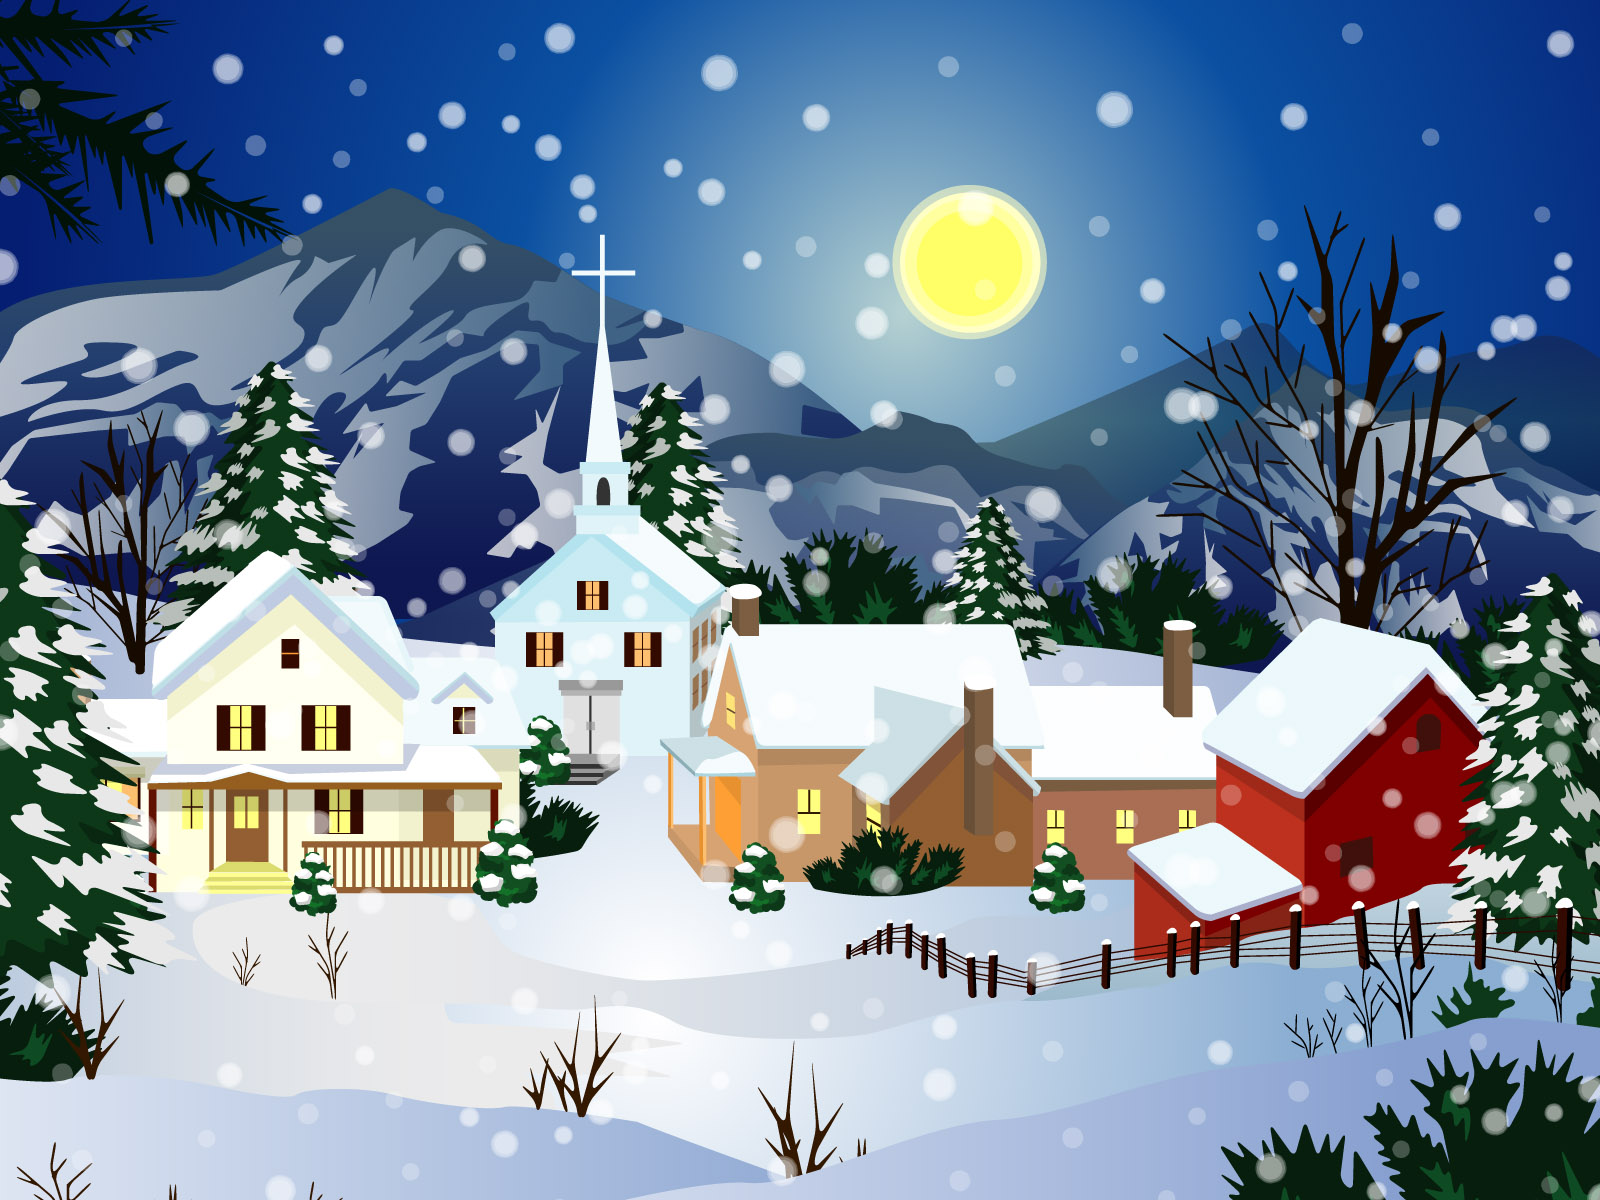 clip art and picture christmas wallpapers free download